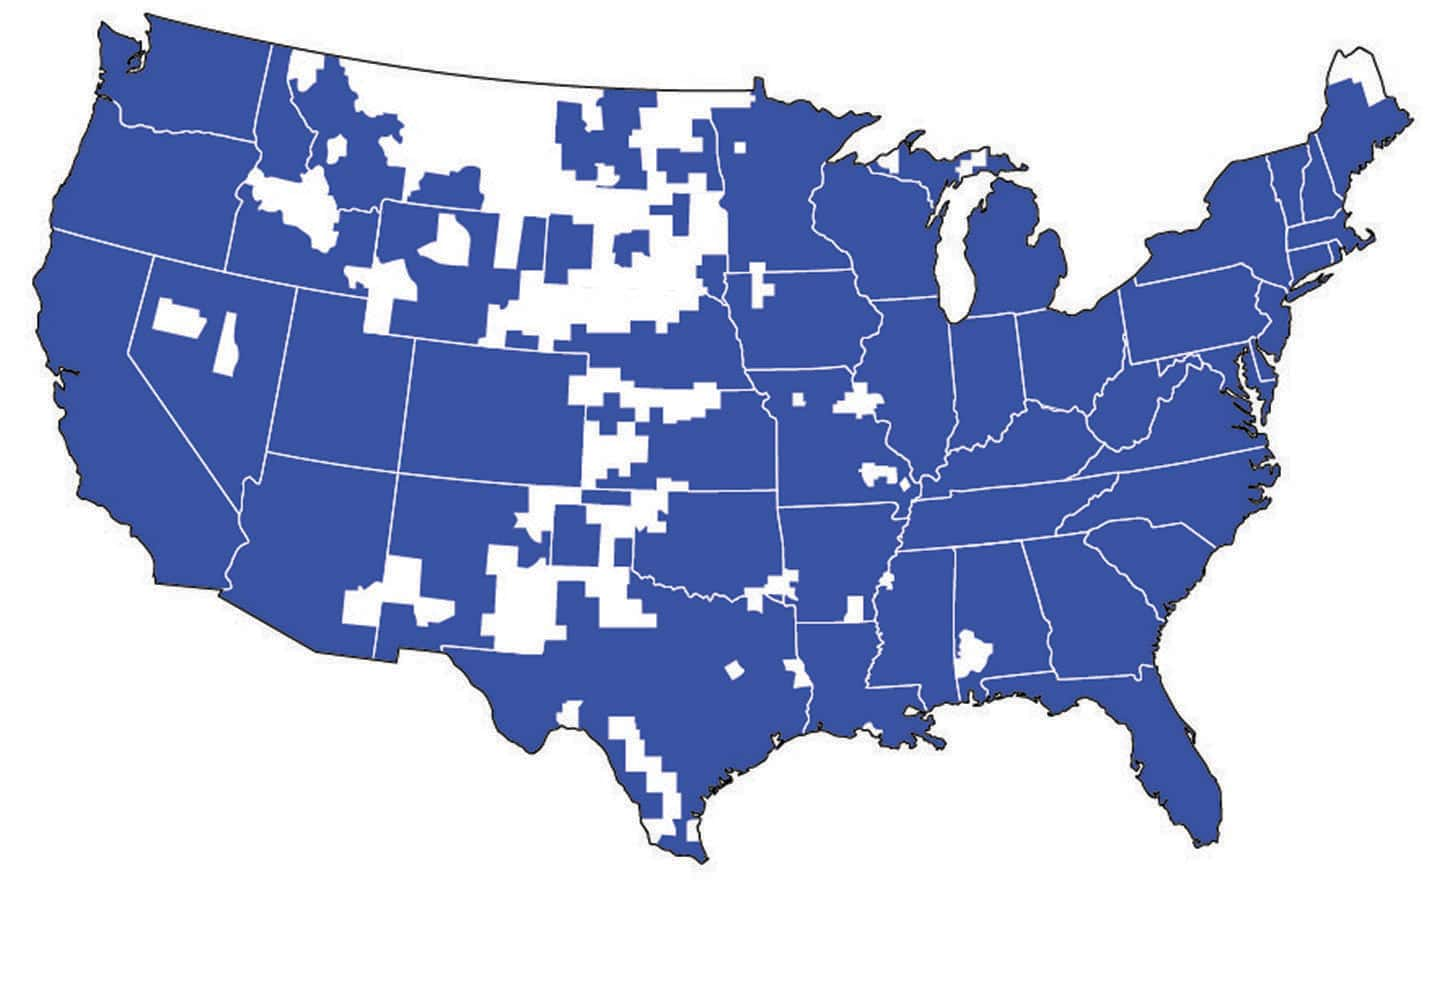 %20by%20County%20100219.png.renditions.extra-large.jpg